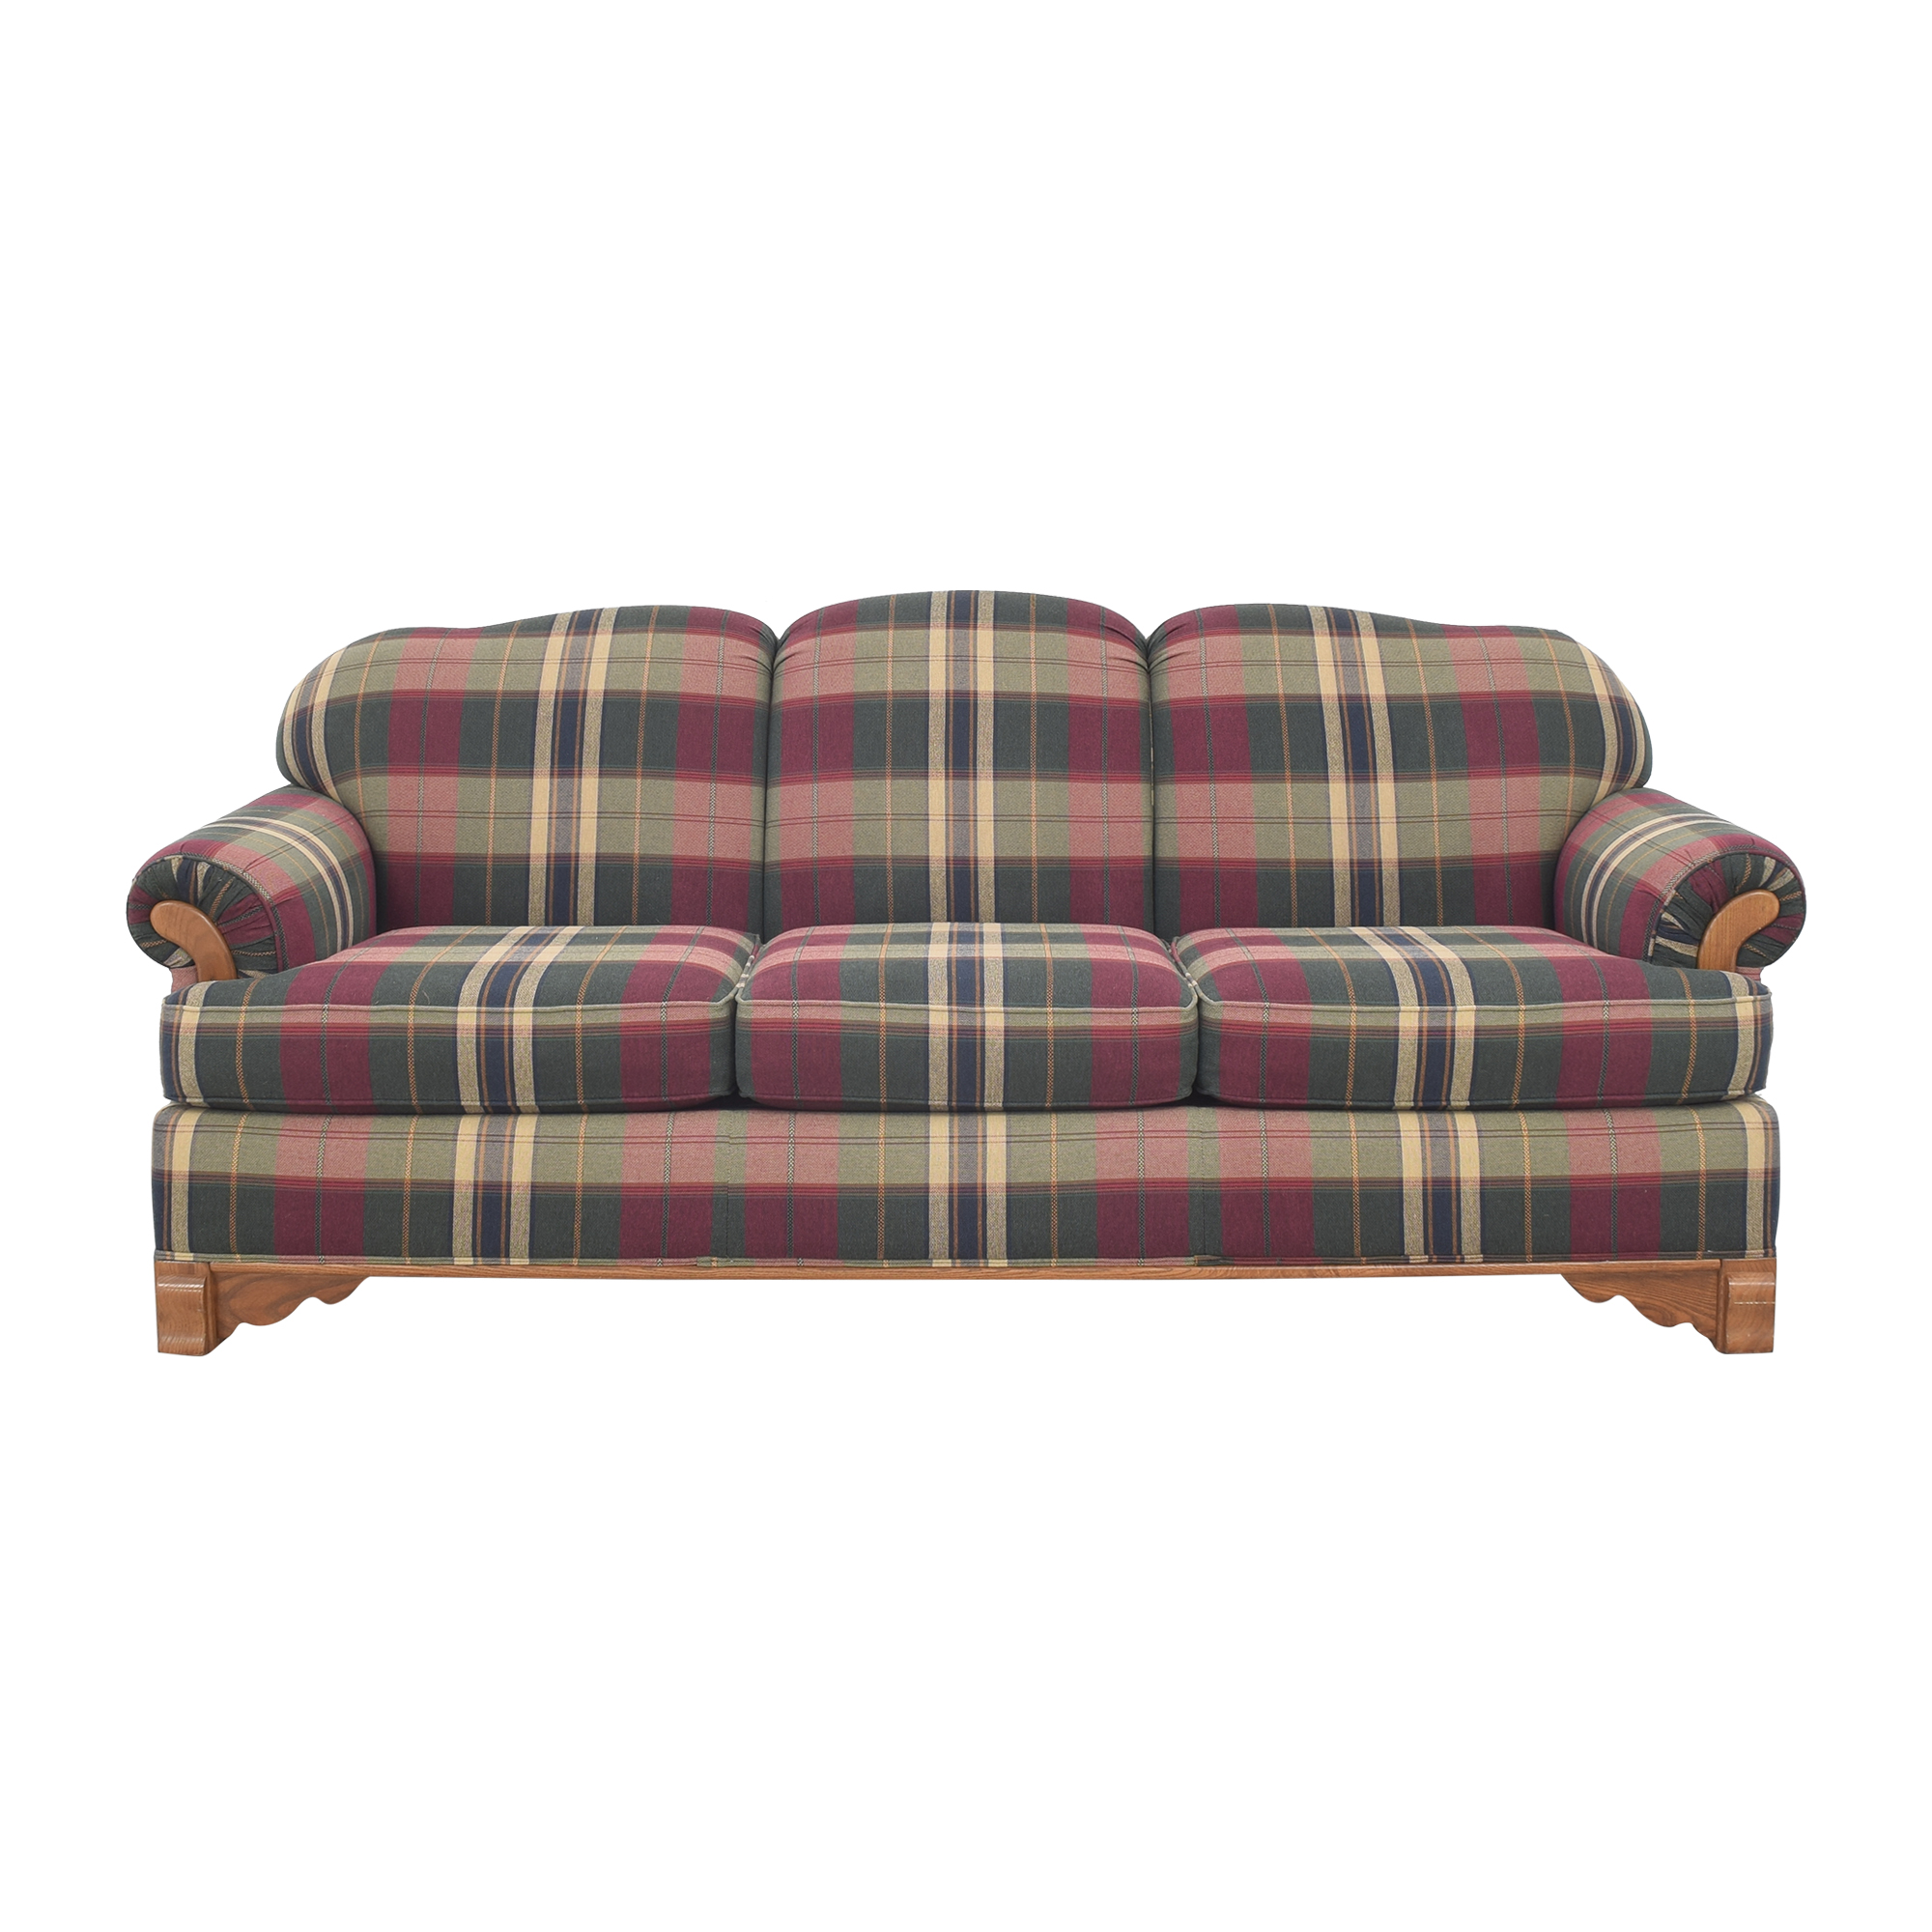 Cochran Cochran Plaid Sofa on sale